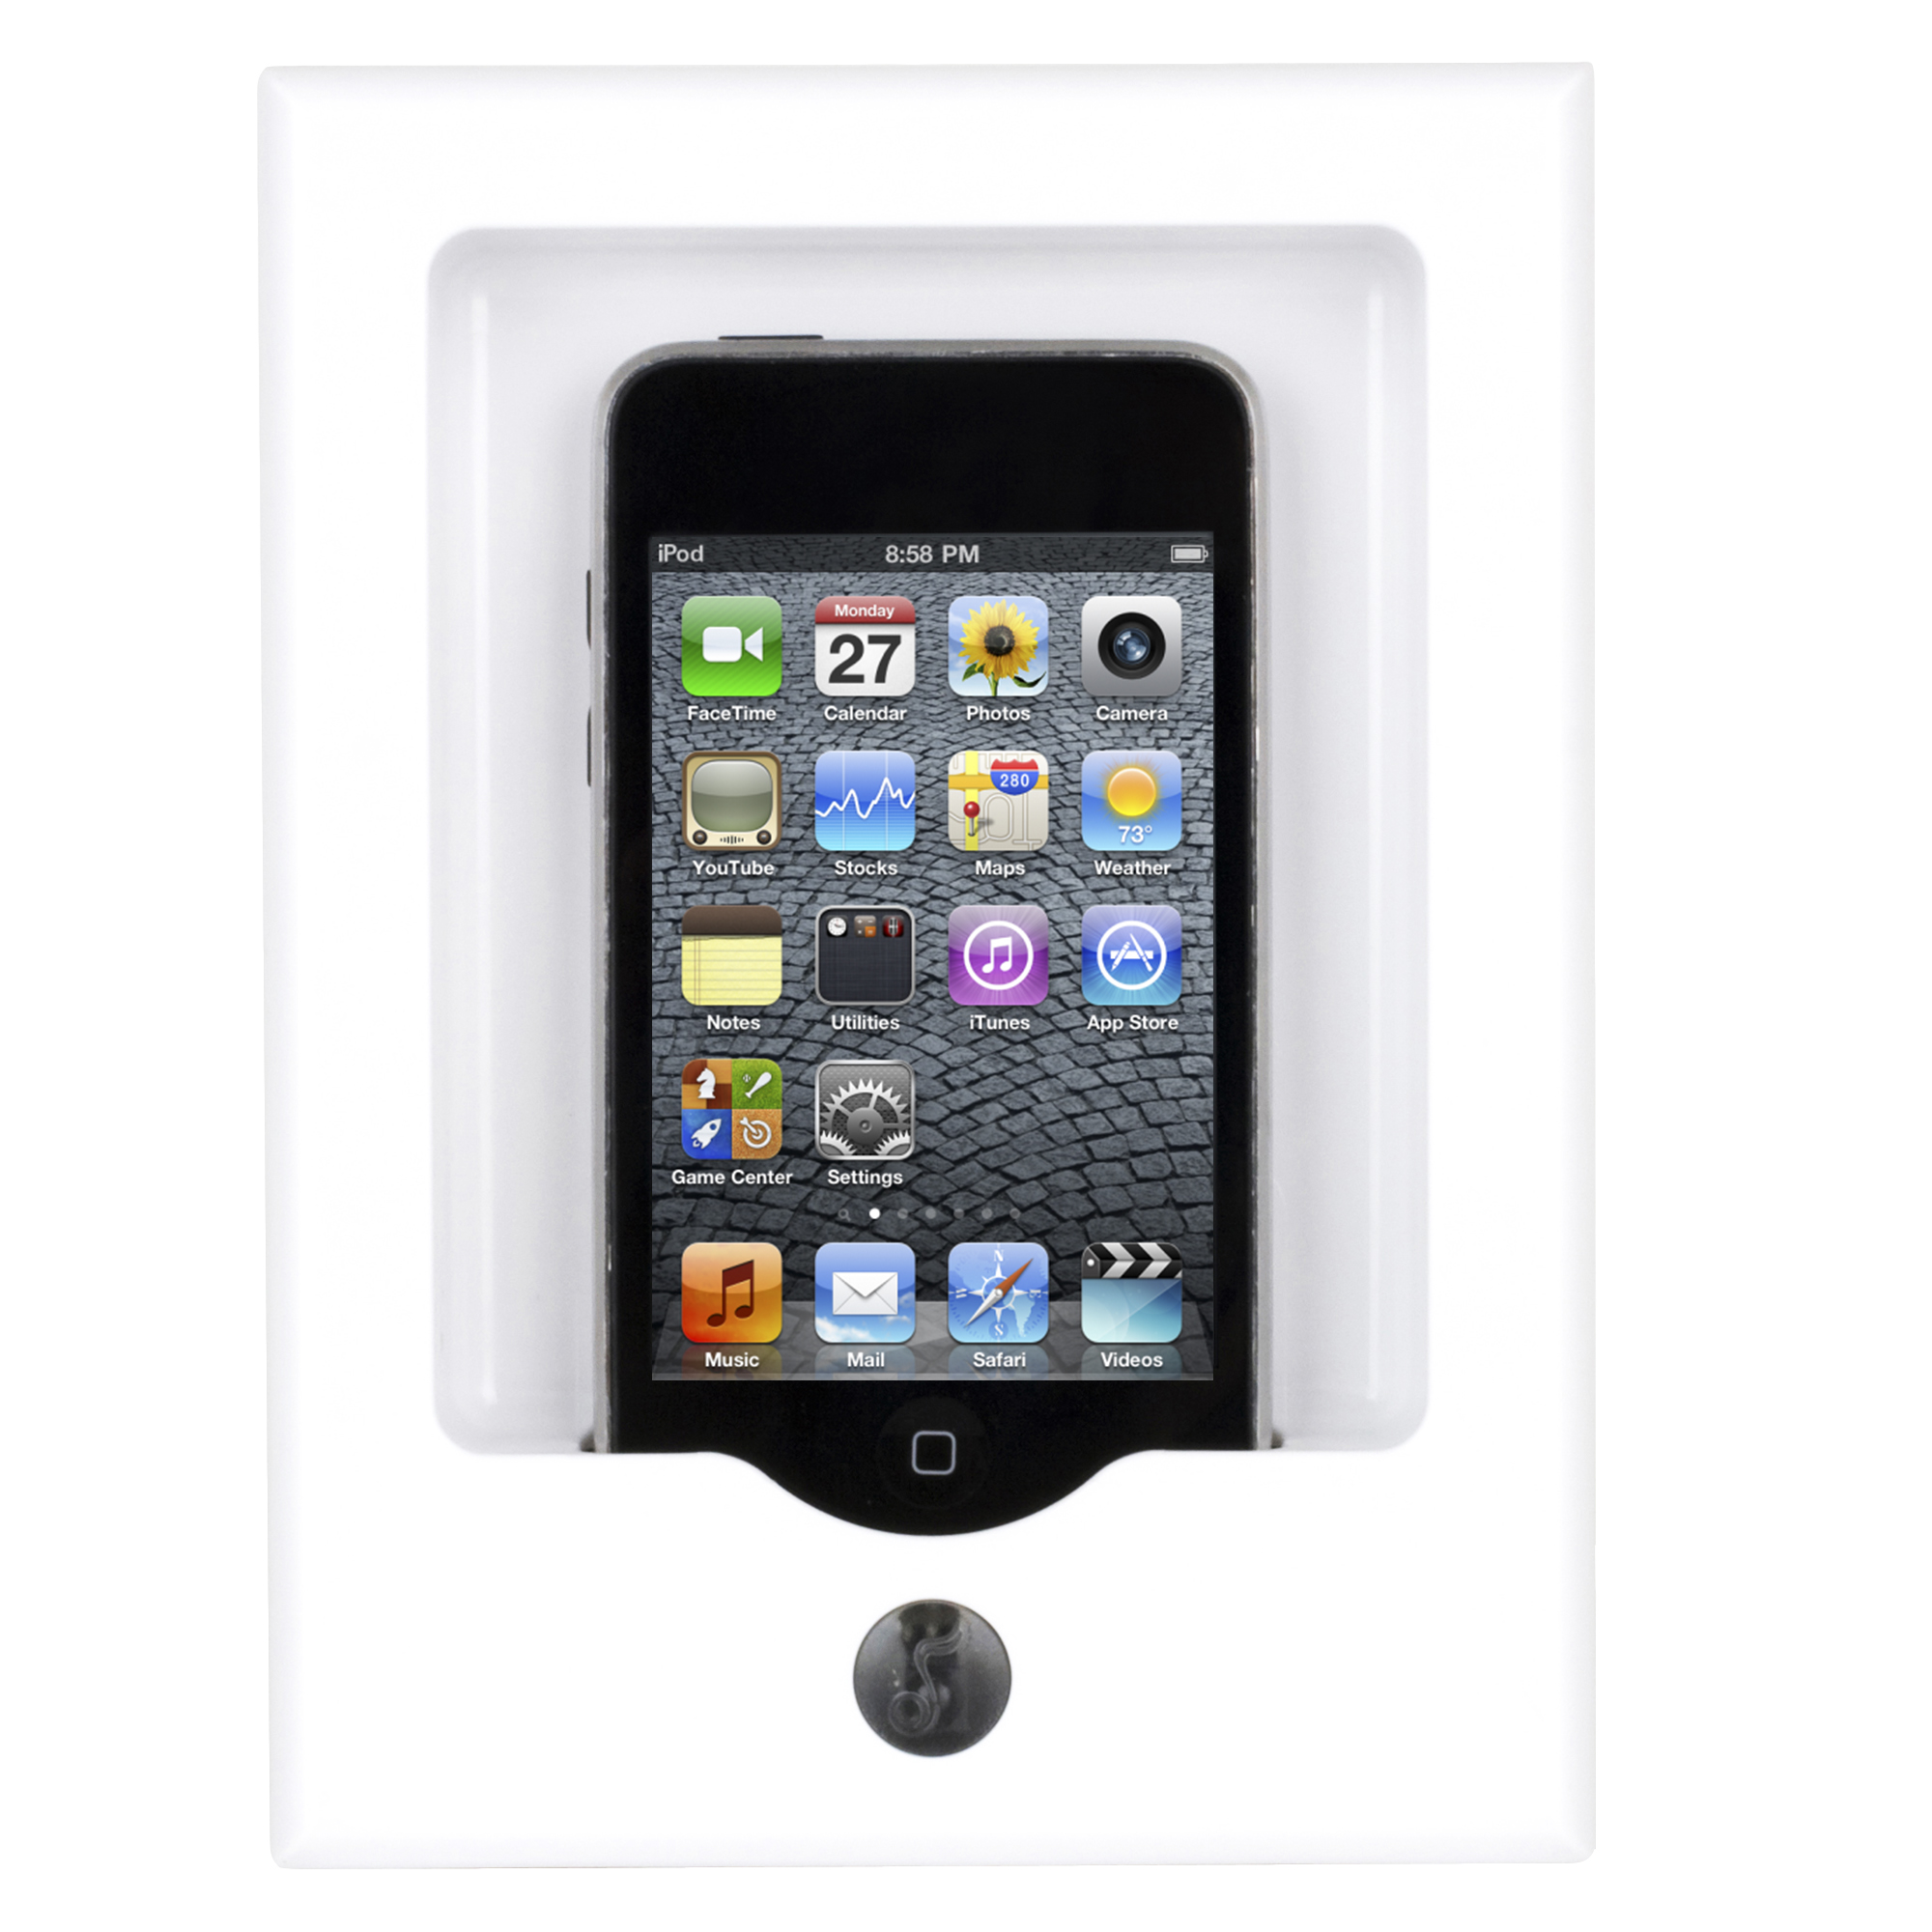 iPod_Touch_image.jpg